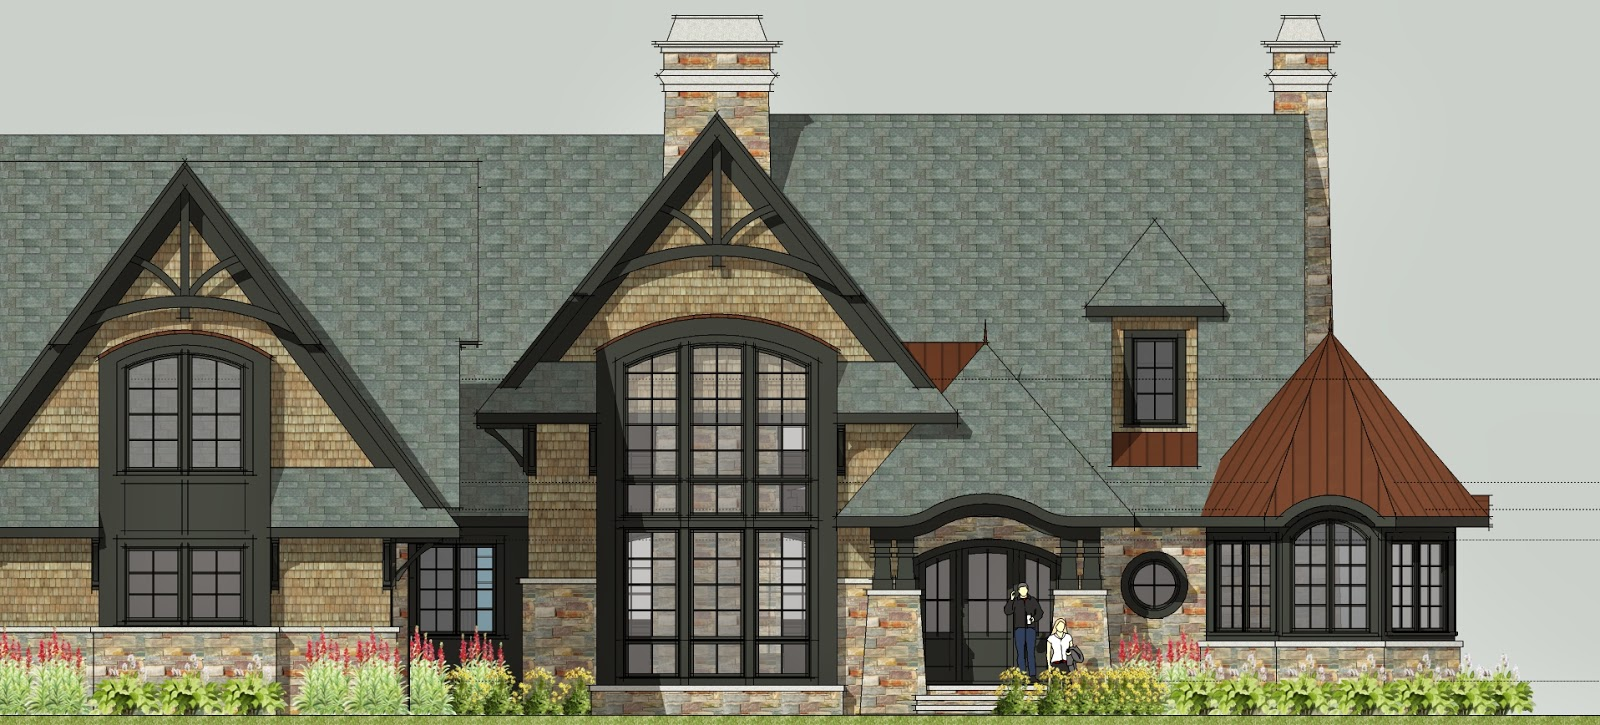 Simply Elegant Home Designs Blog Home Plans From Big To